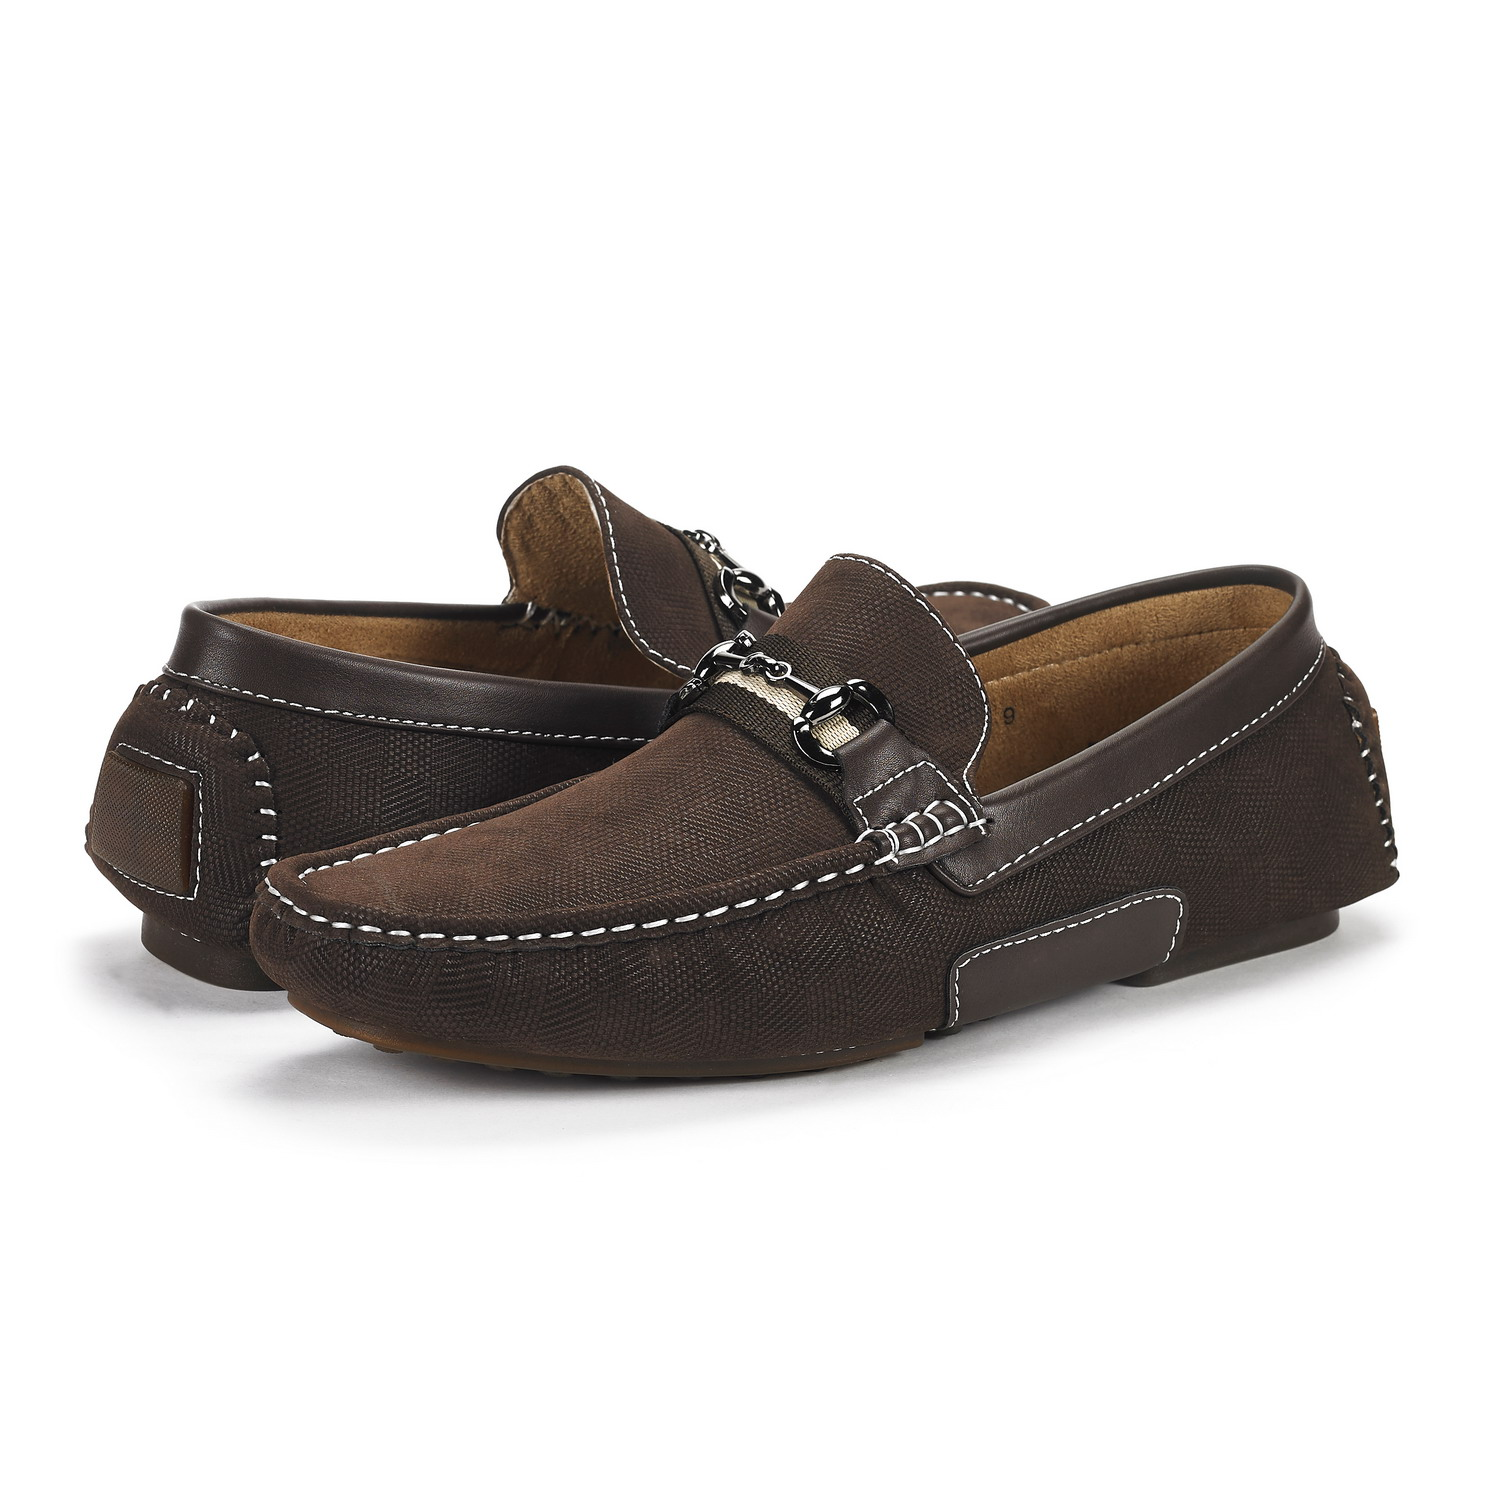 Bruno-Marc-Mens-Casual-Driving-Antiskid-Loafers-Leather-Slip-On-Moccasins-Shoes thumbnail 13